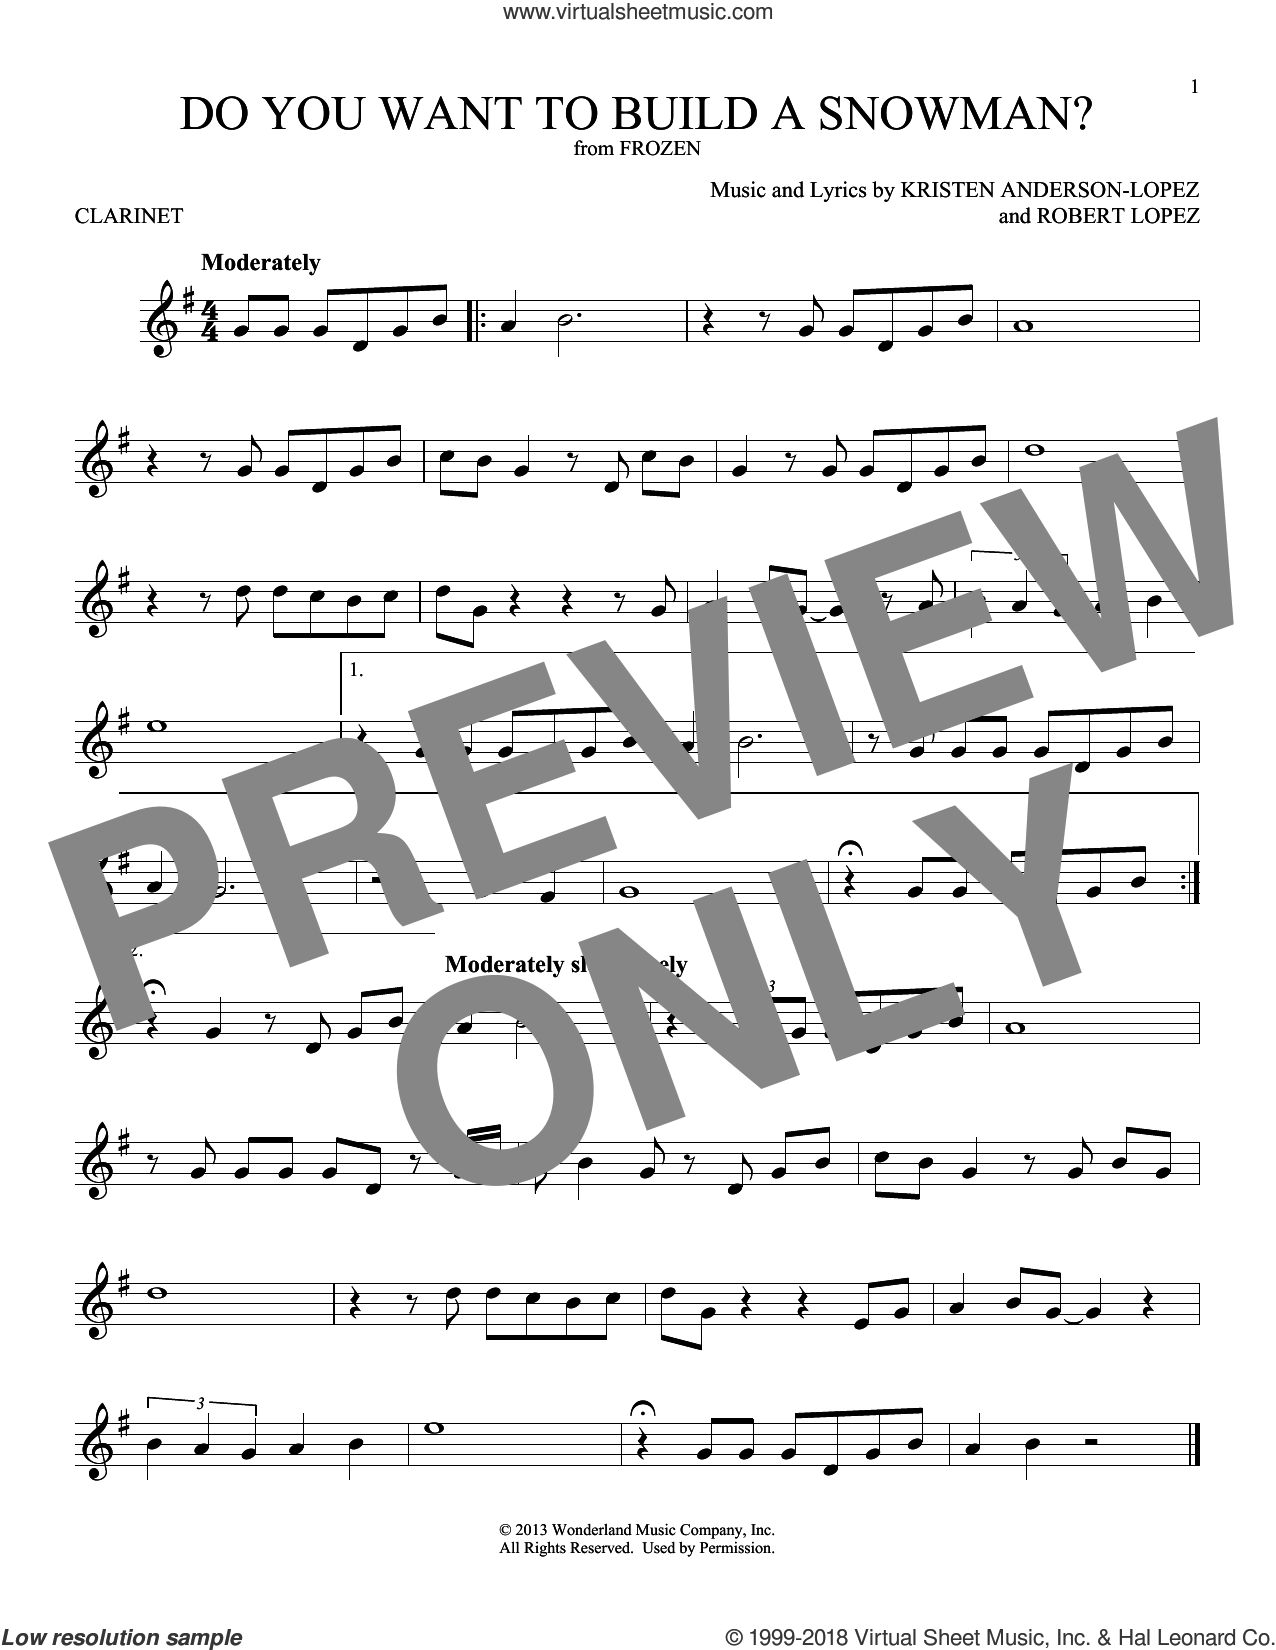 Do You Want To Build A Snowman? (from Disney's Frozen) sheet music for clarinet solo by Kristen Bell, Agatha Lee Monn & Katie Lopez, Kristen Anderson-Lopez and Robert Lopez, intermediate skill level